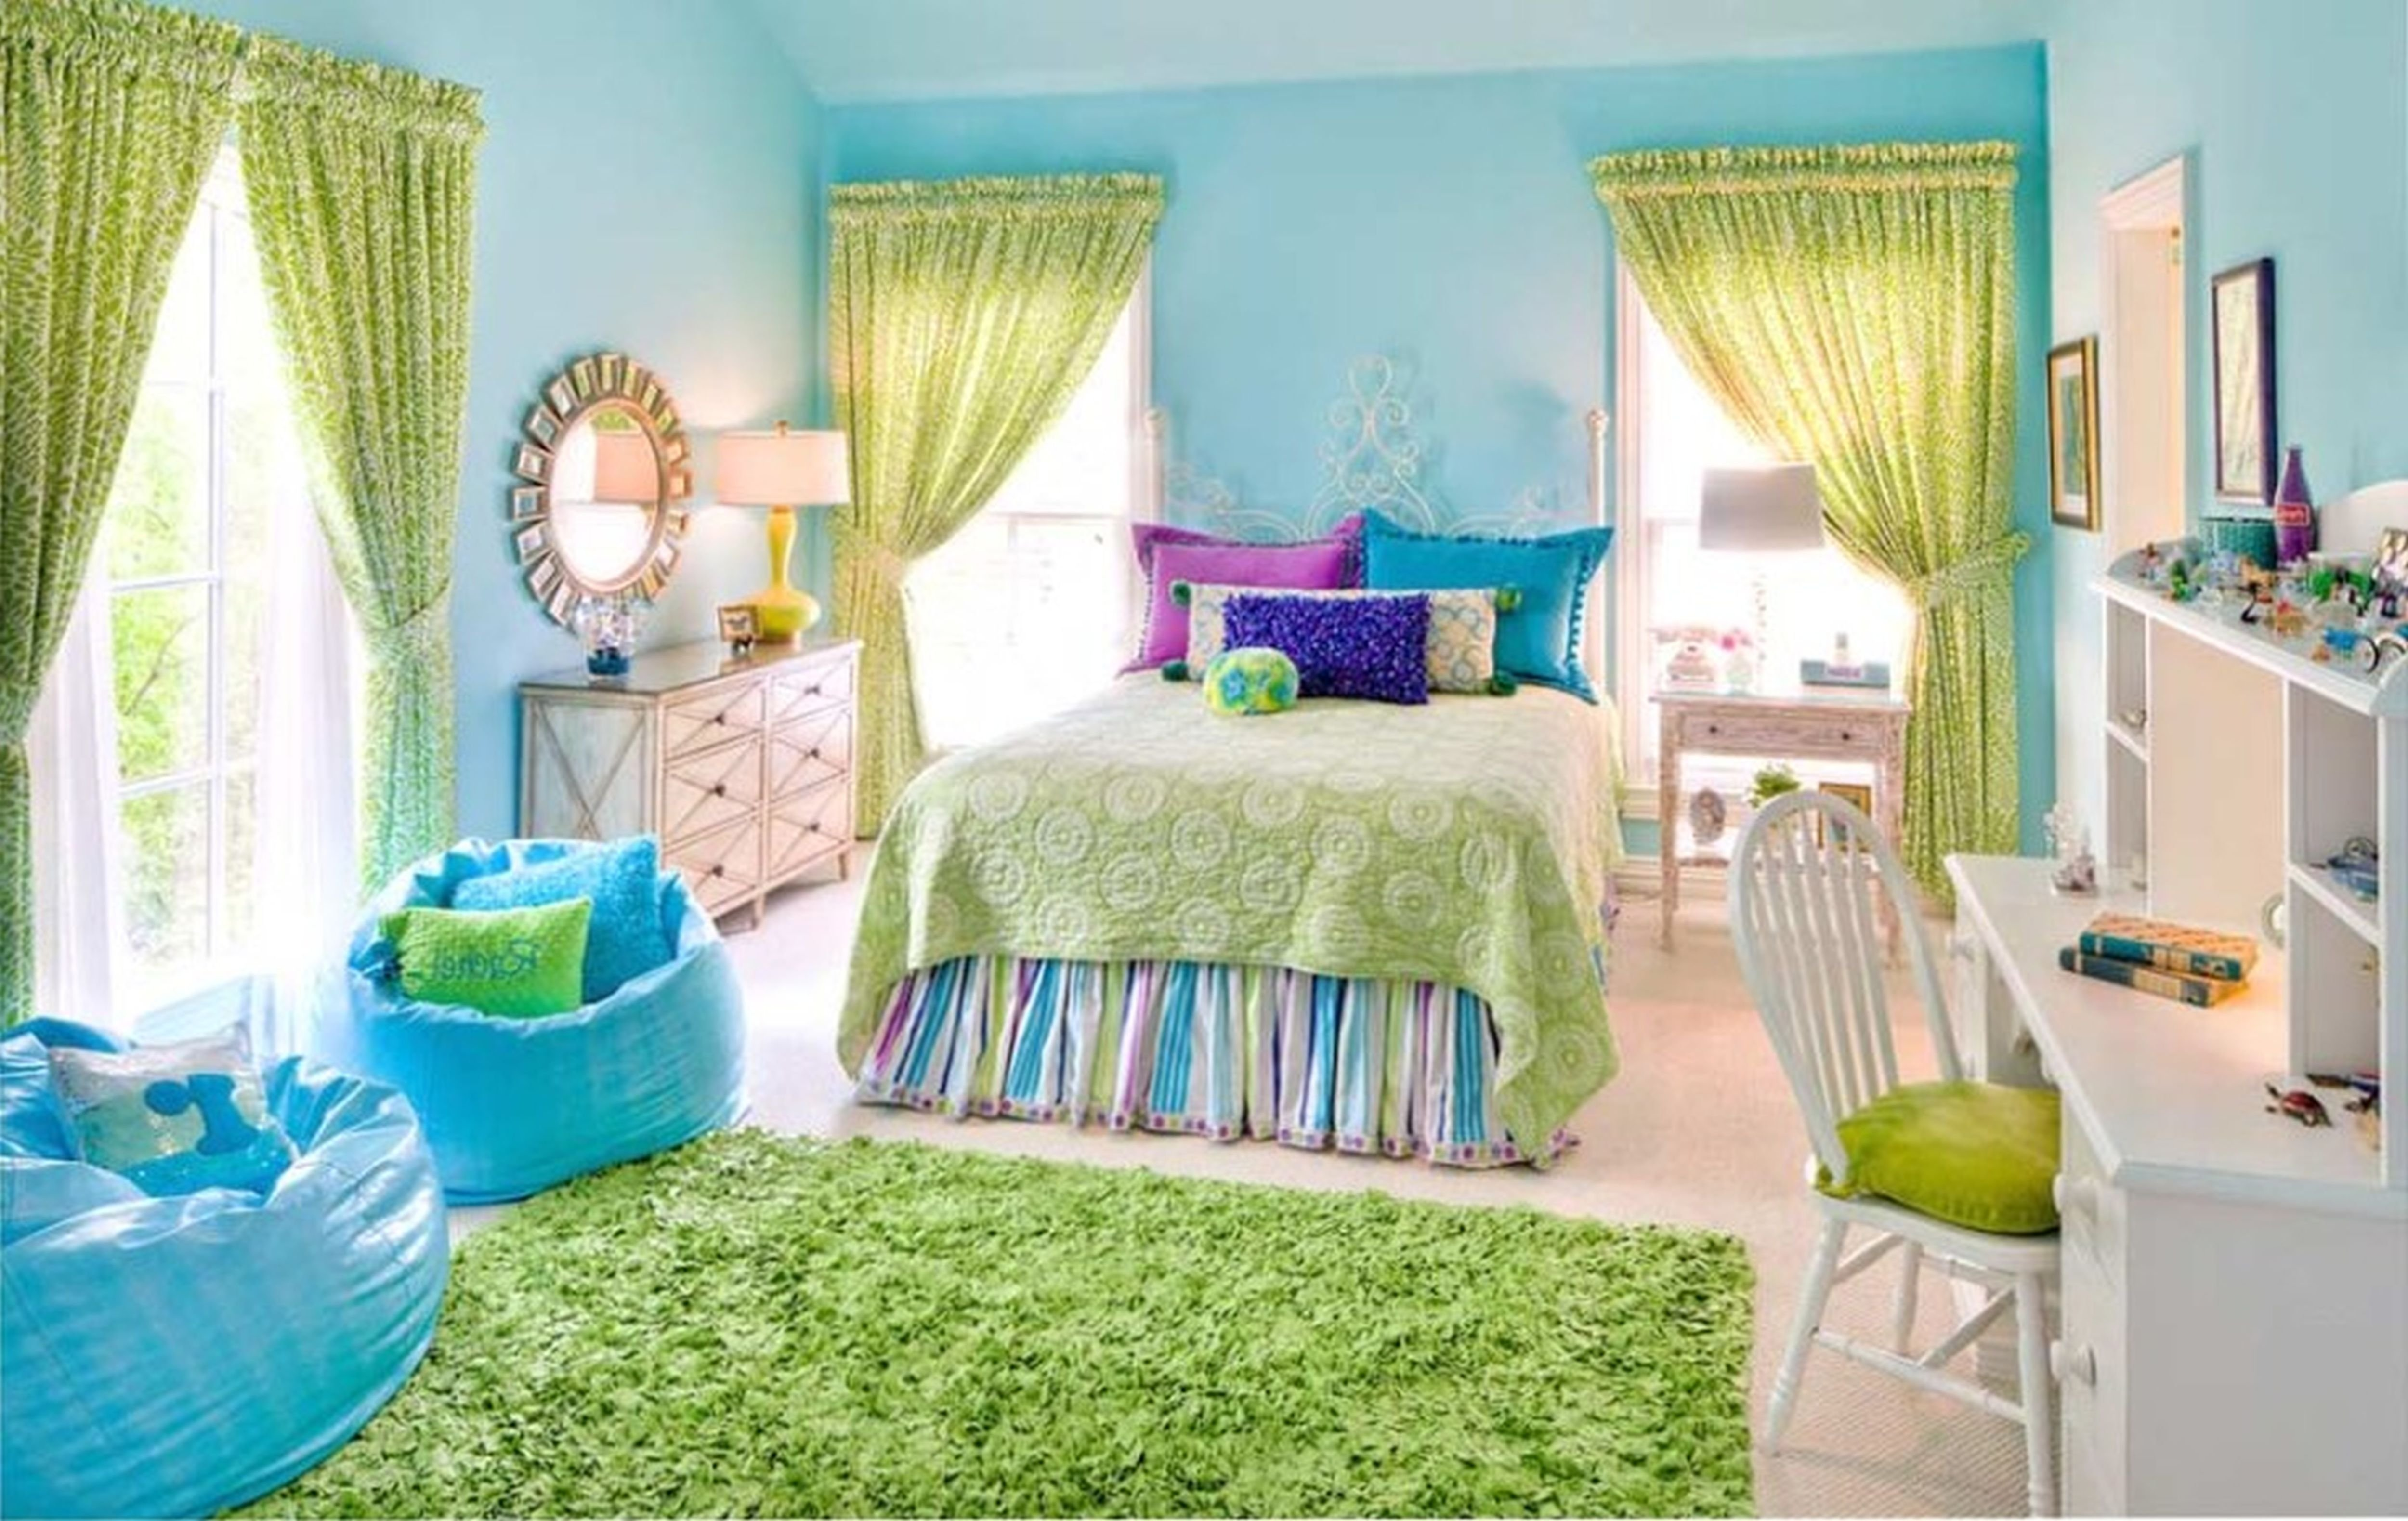 10 Attractive Blue And Green Bedroom Ideas renovate your home wall decor with great stunning blue childrens 2021